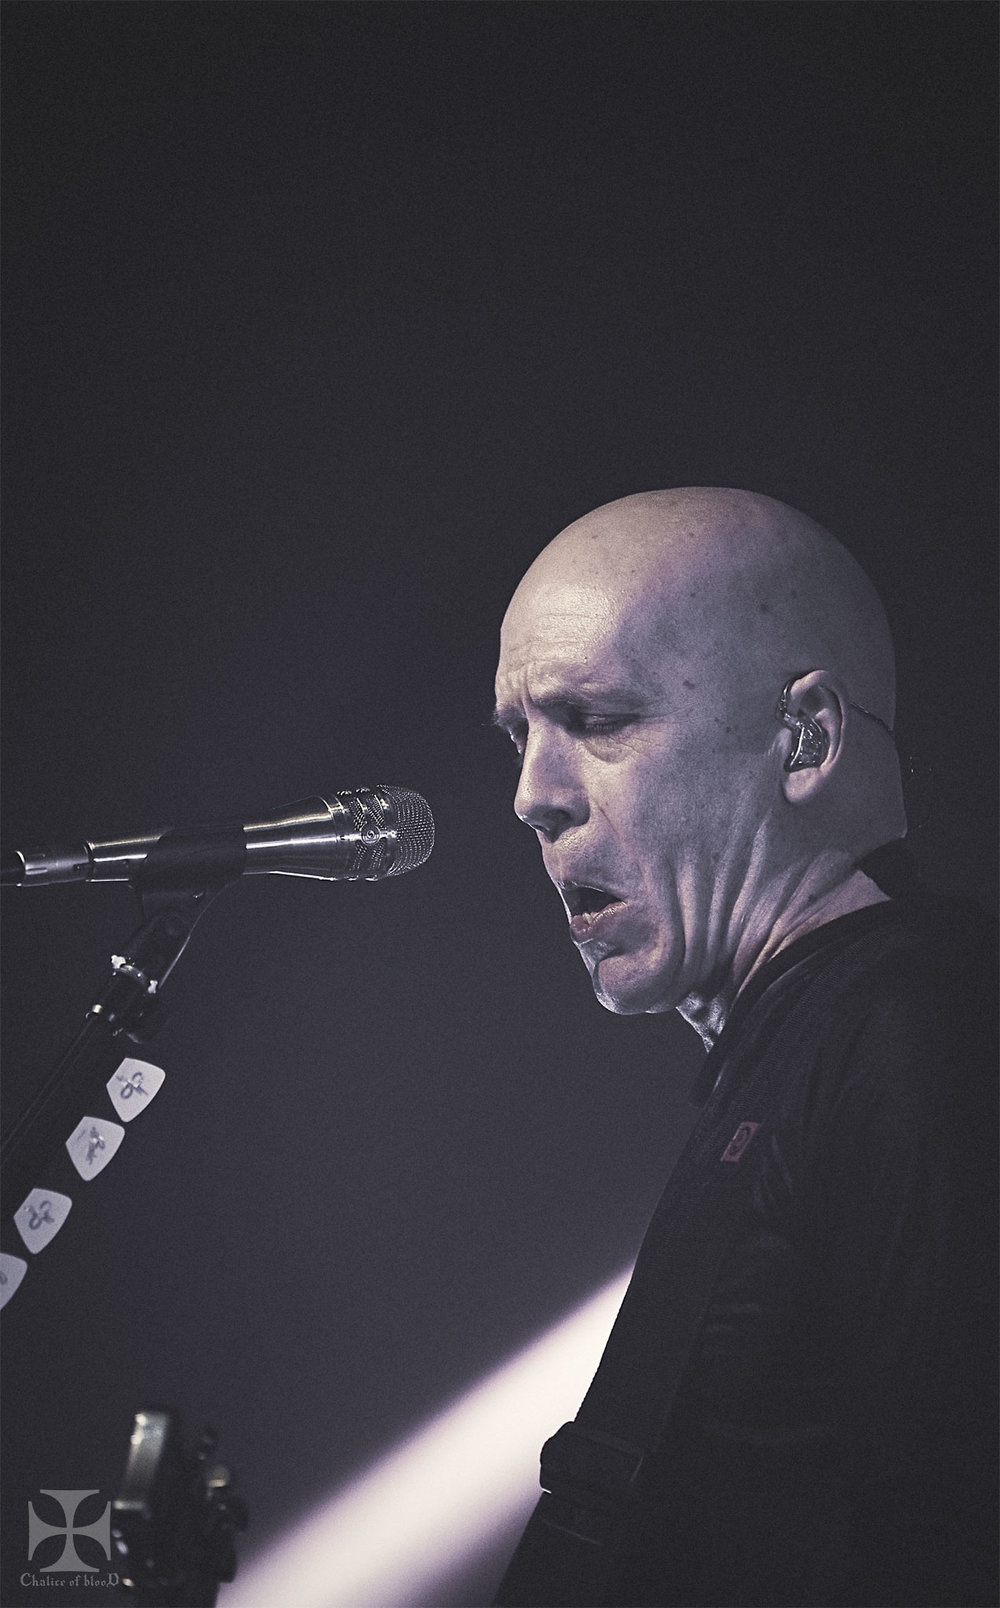 2017.05-Devin-Townsend---13-Exposure-watermarked.jpg